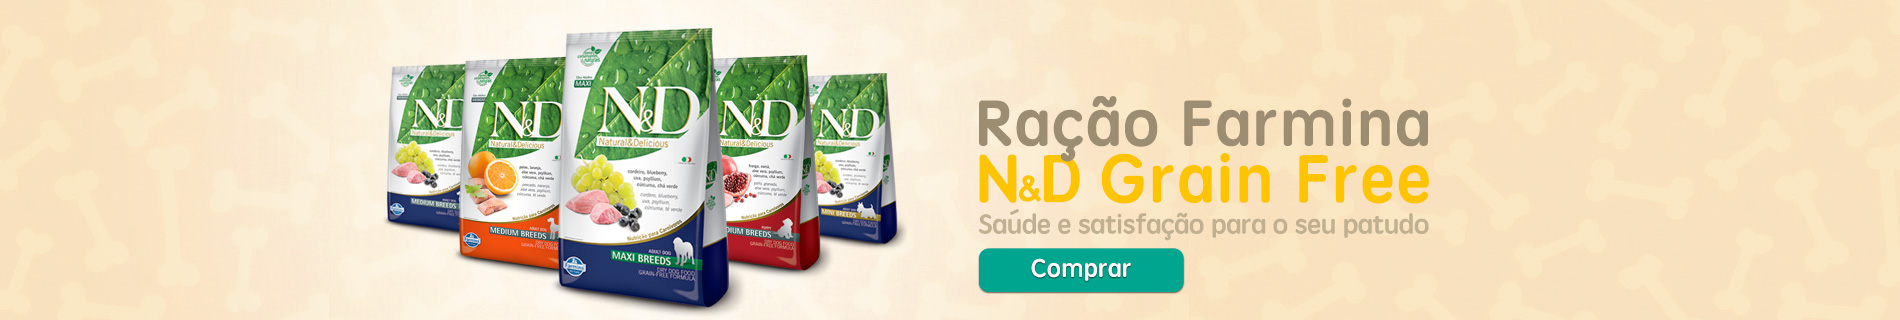 Ração Super Premium Farmina N&D Grain Free